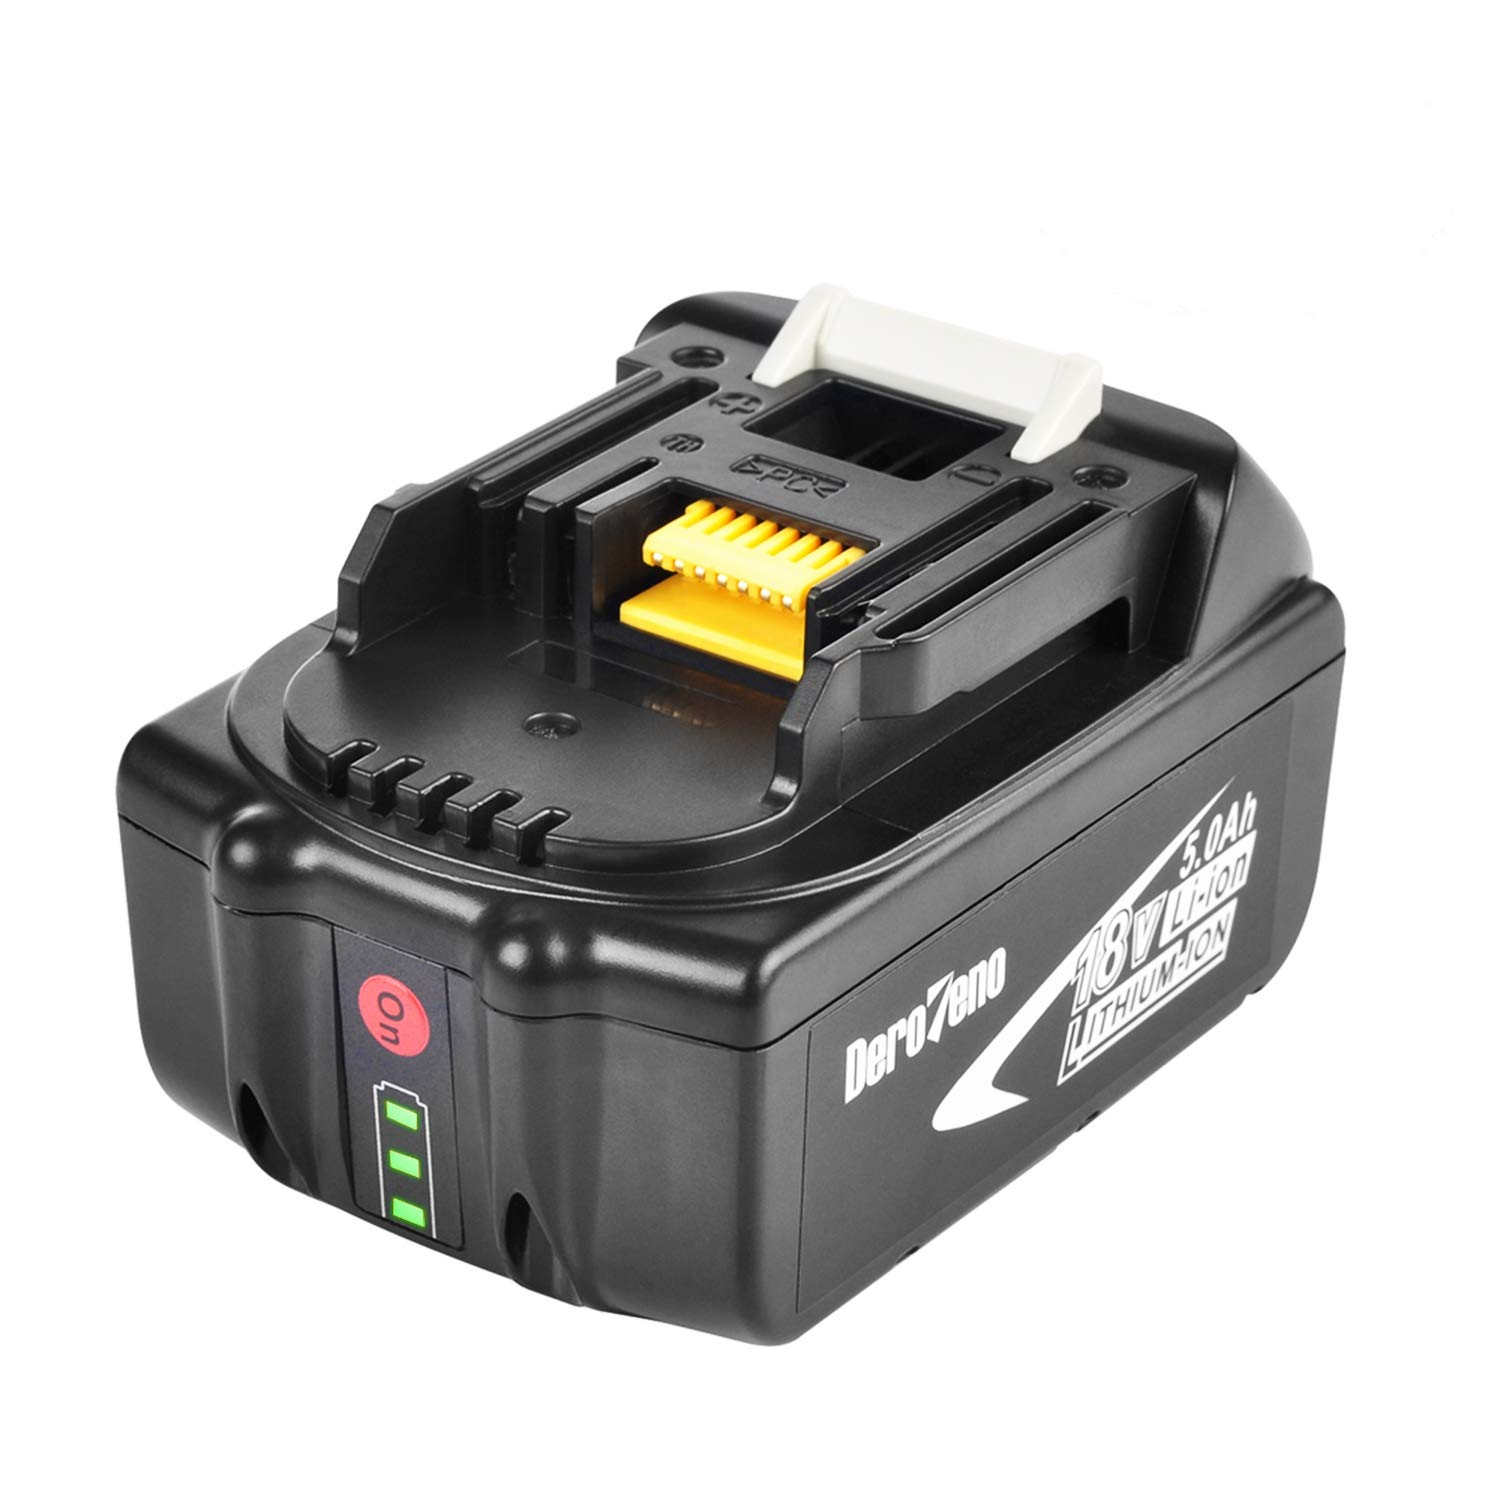 DeroTeno 18V 5.0AH LXT Lithium-Ion Replacement Battery with LED Charge Indicator for Makita BL1850 BL1840 BL1830 LXT-400 194204-5 Cordless Power Tools